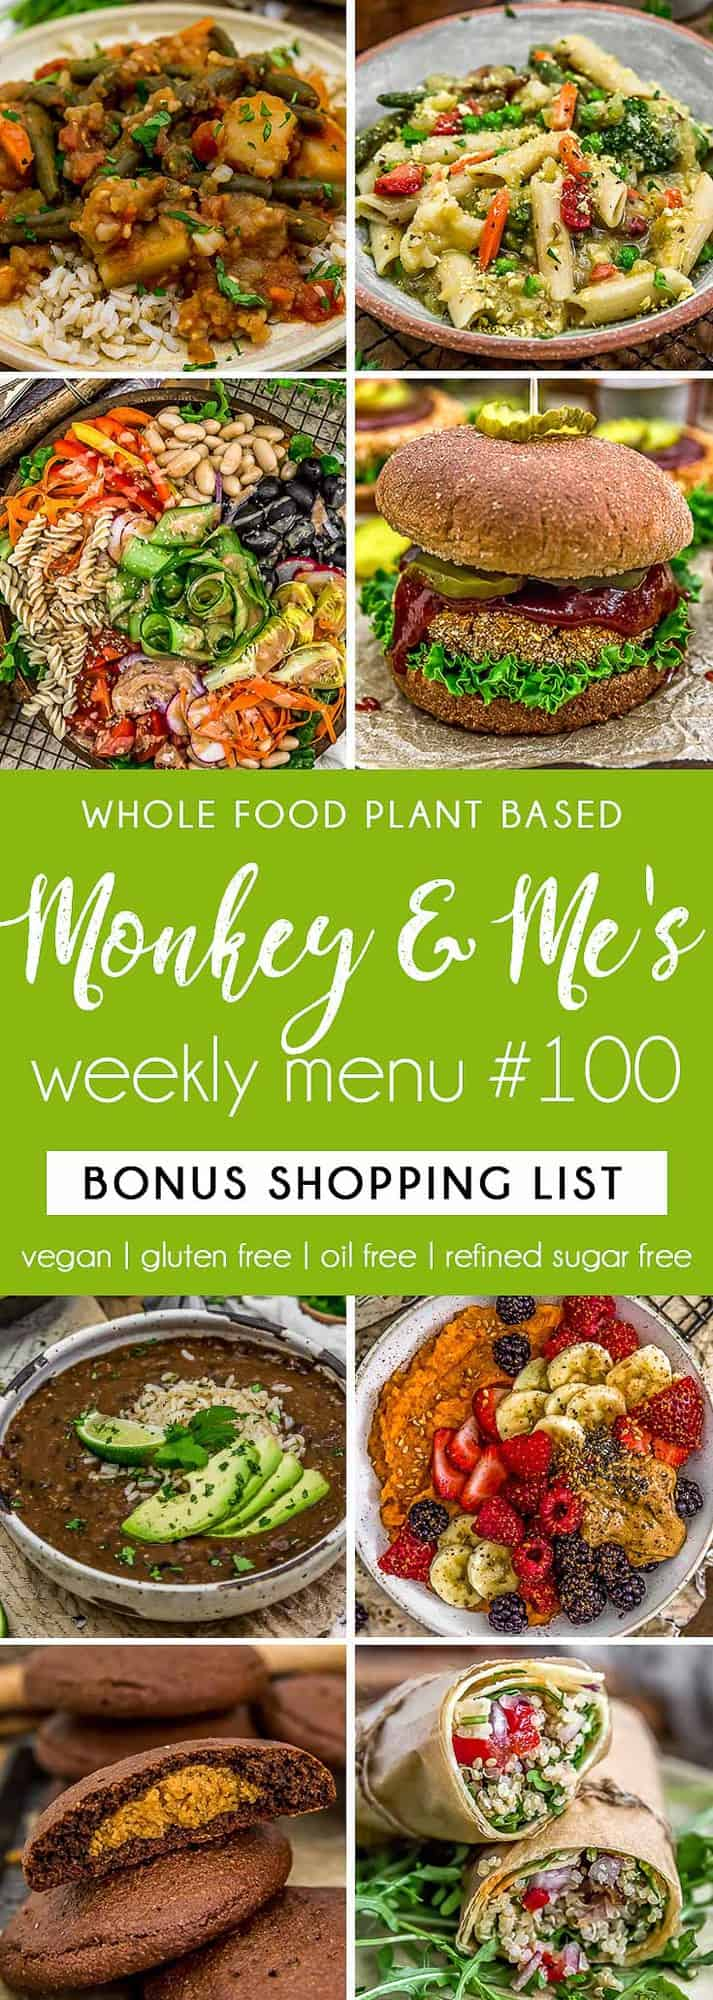 Monkey and Me's Menu 100 featuring 8 recipes